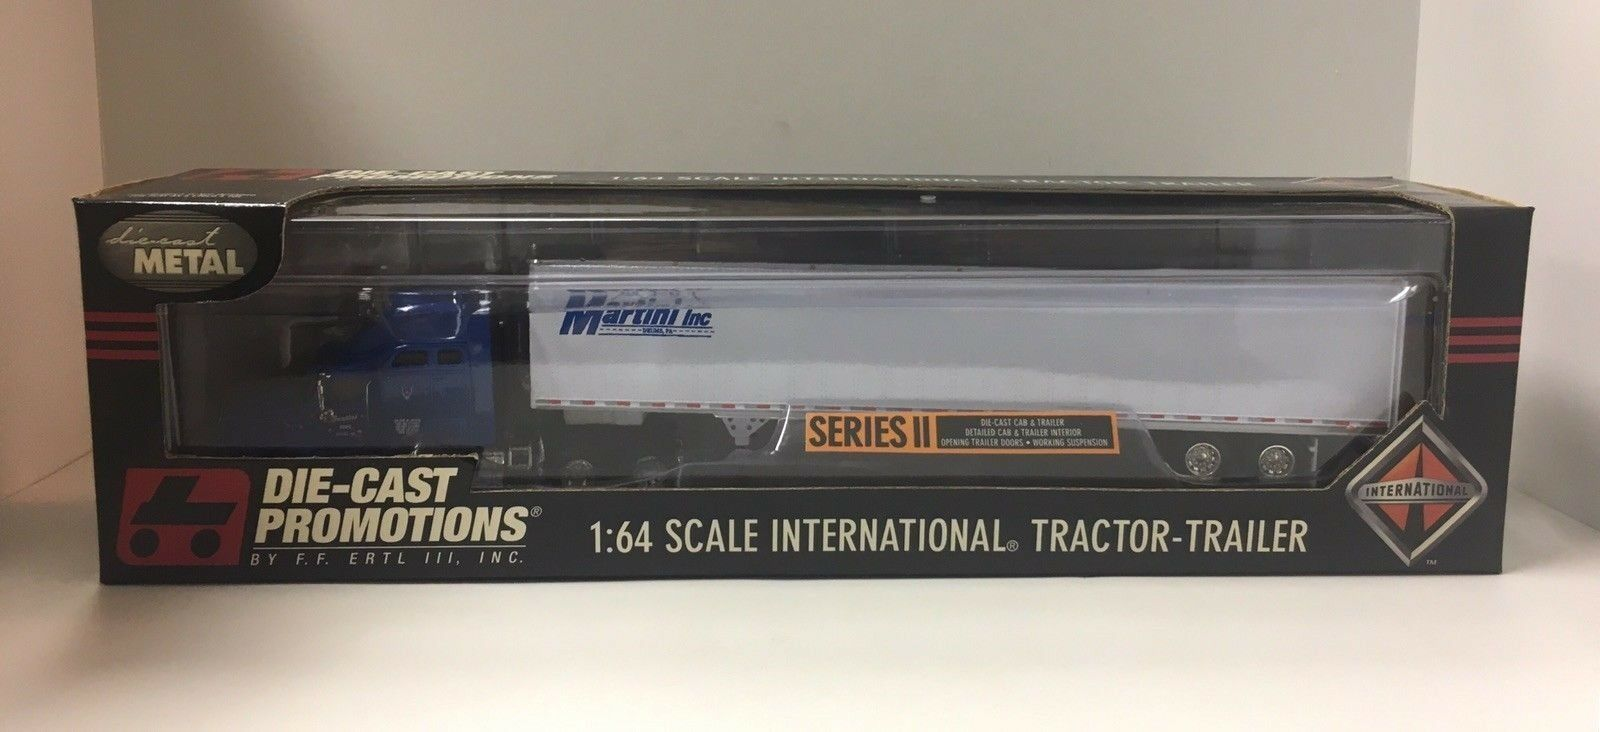 DCP Die Cast Promotions 1 64 2001 Martini Inc. Tractor & Trailer Ertl Series NOS